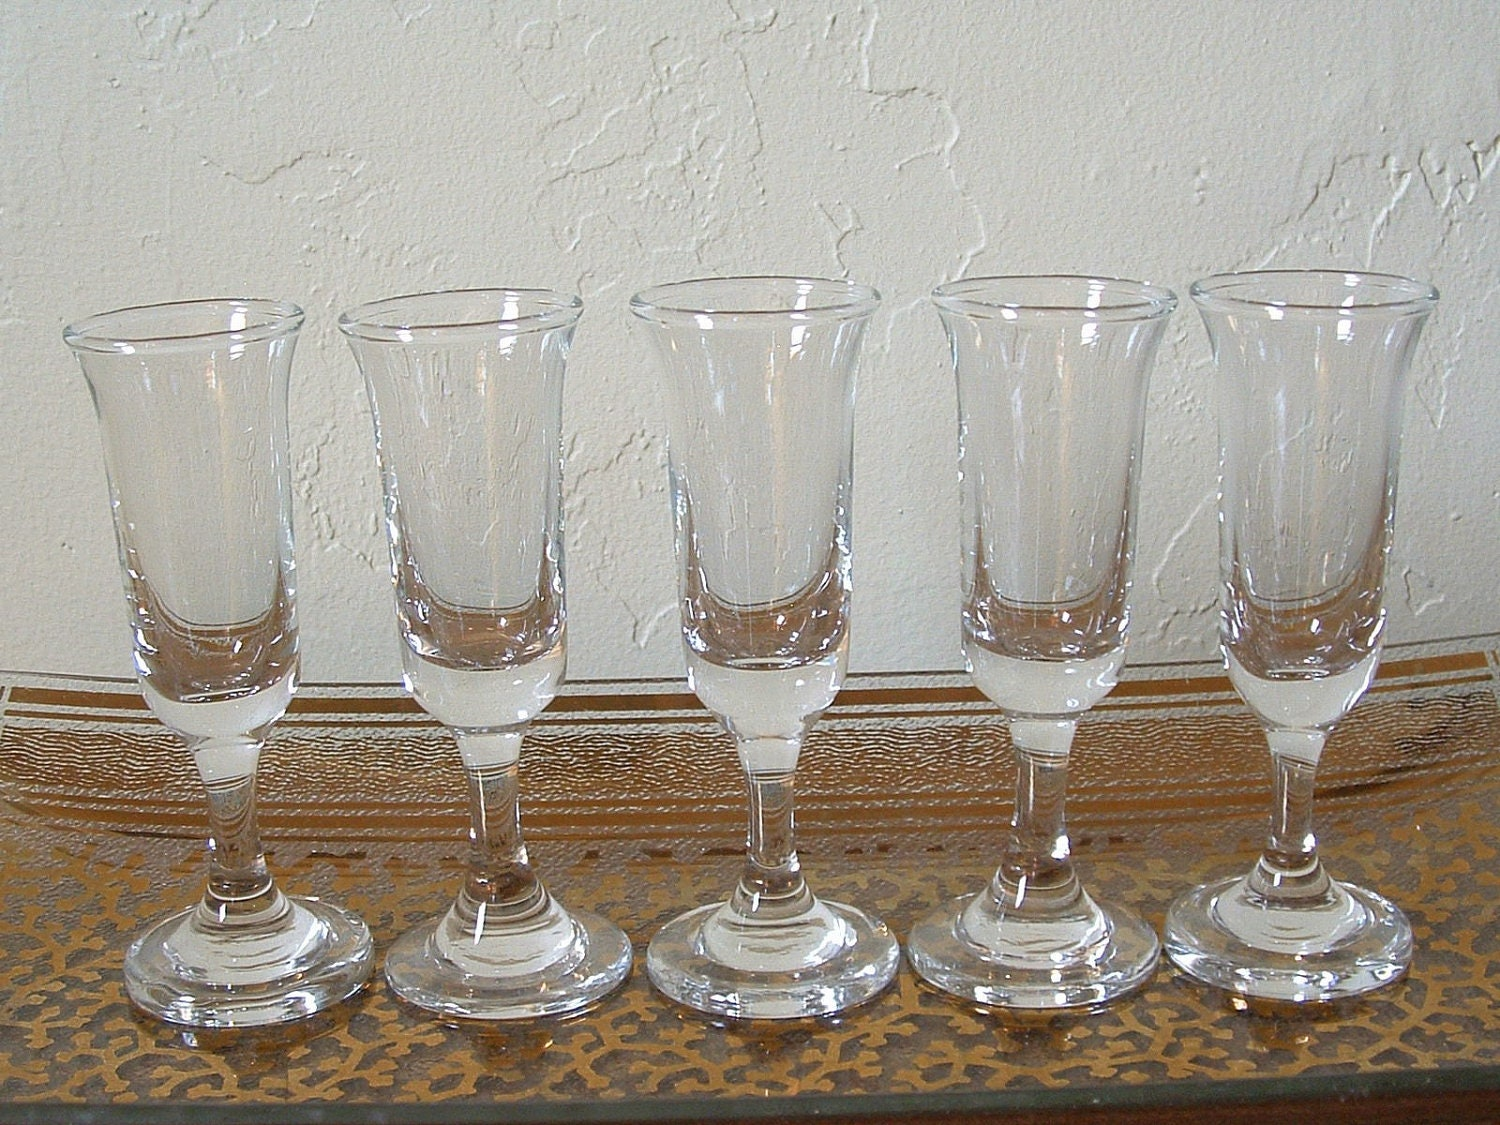 vintage cordial glasses shot glasses set of 5 small. Black Bedroom Furniture Sets. Home Design Ideas